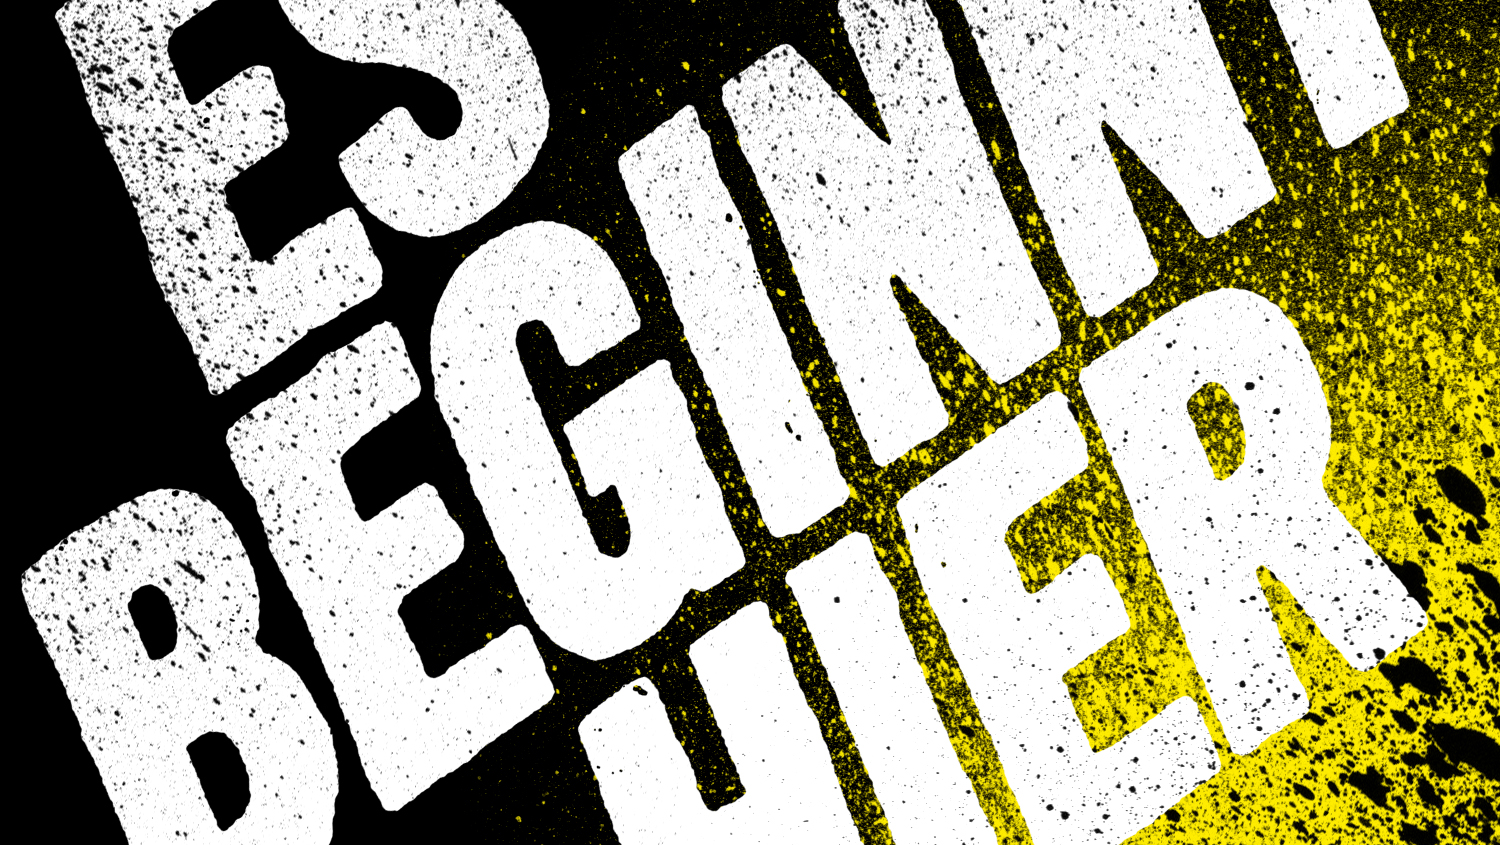 Es beginnt hier - Header (c) Amnesty International